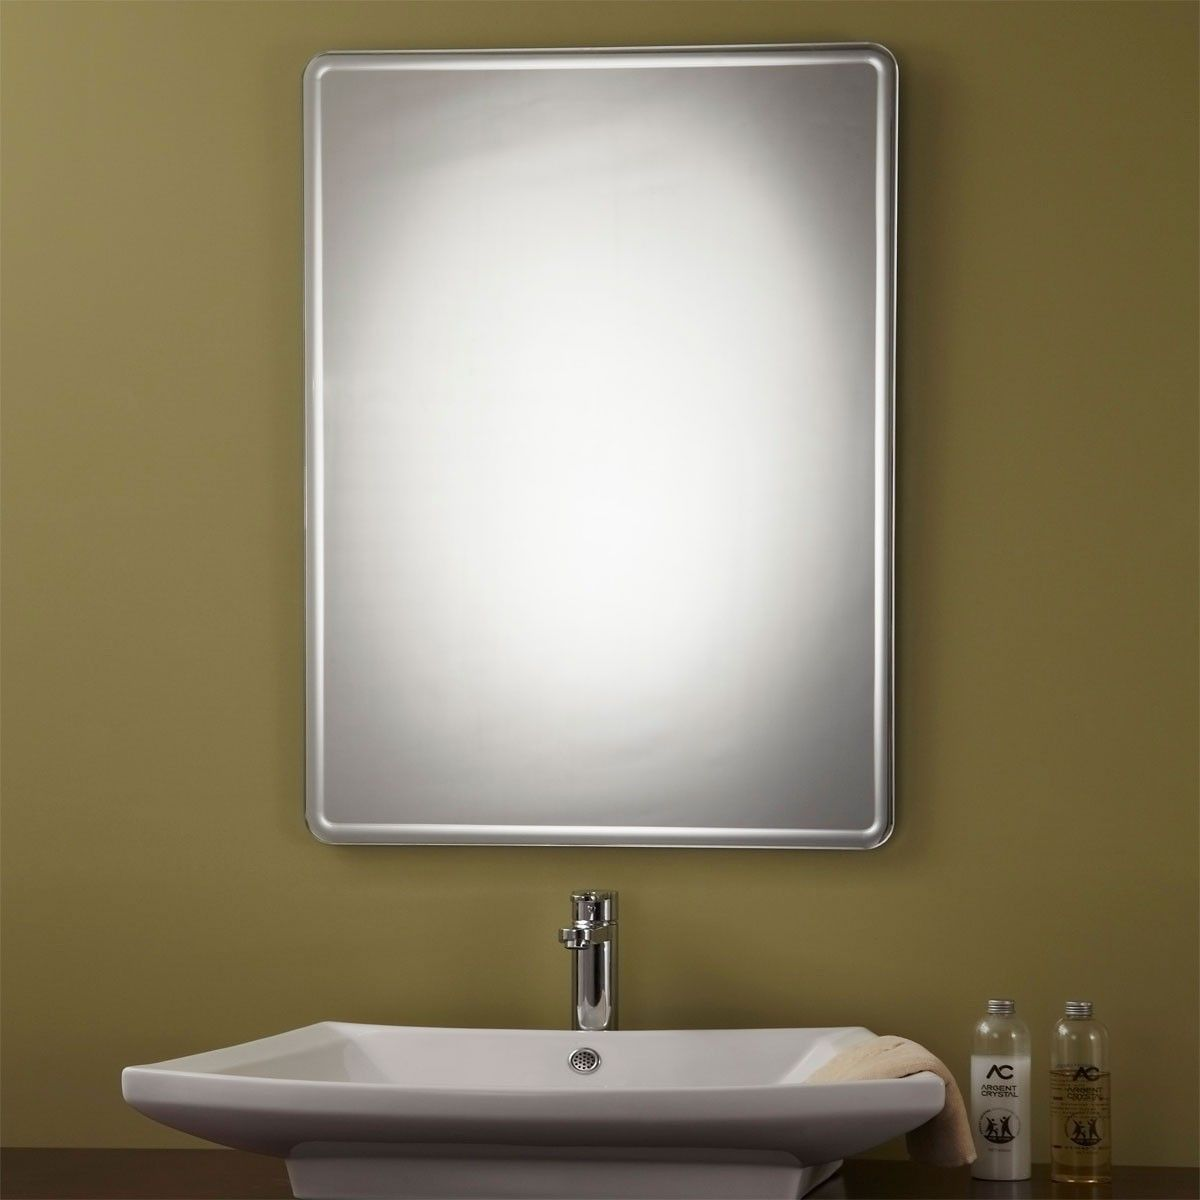 24 x 32 In Unframed Bathroom Mirror - Reversible and Round Polished Edge (YJ-169H)